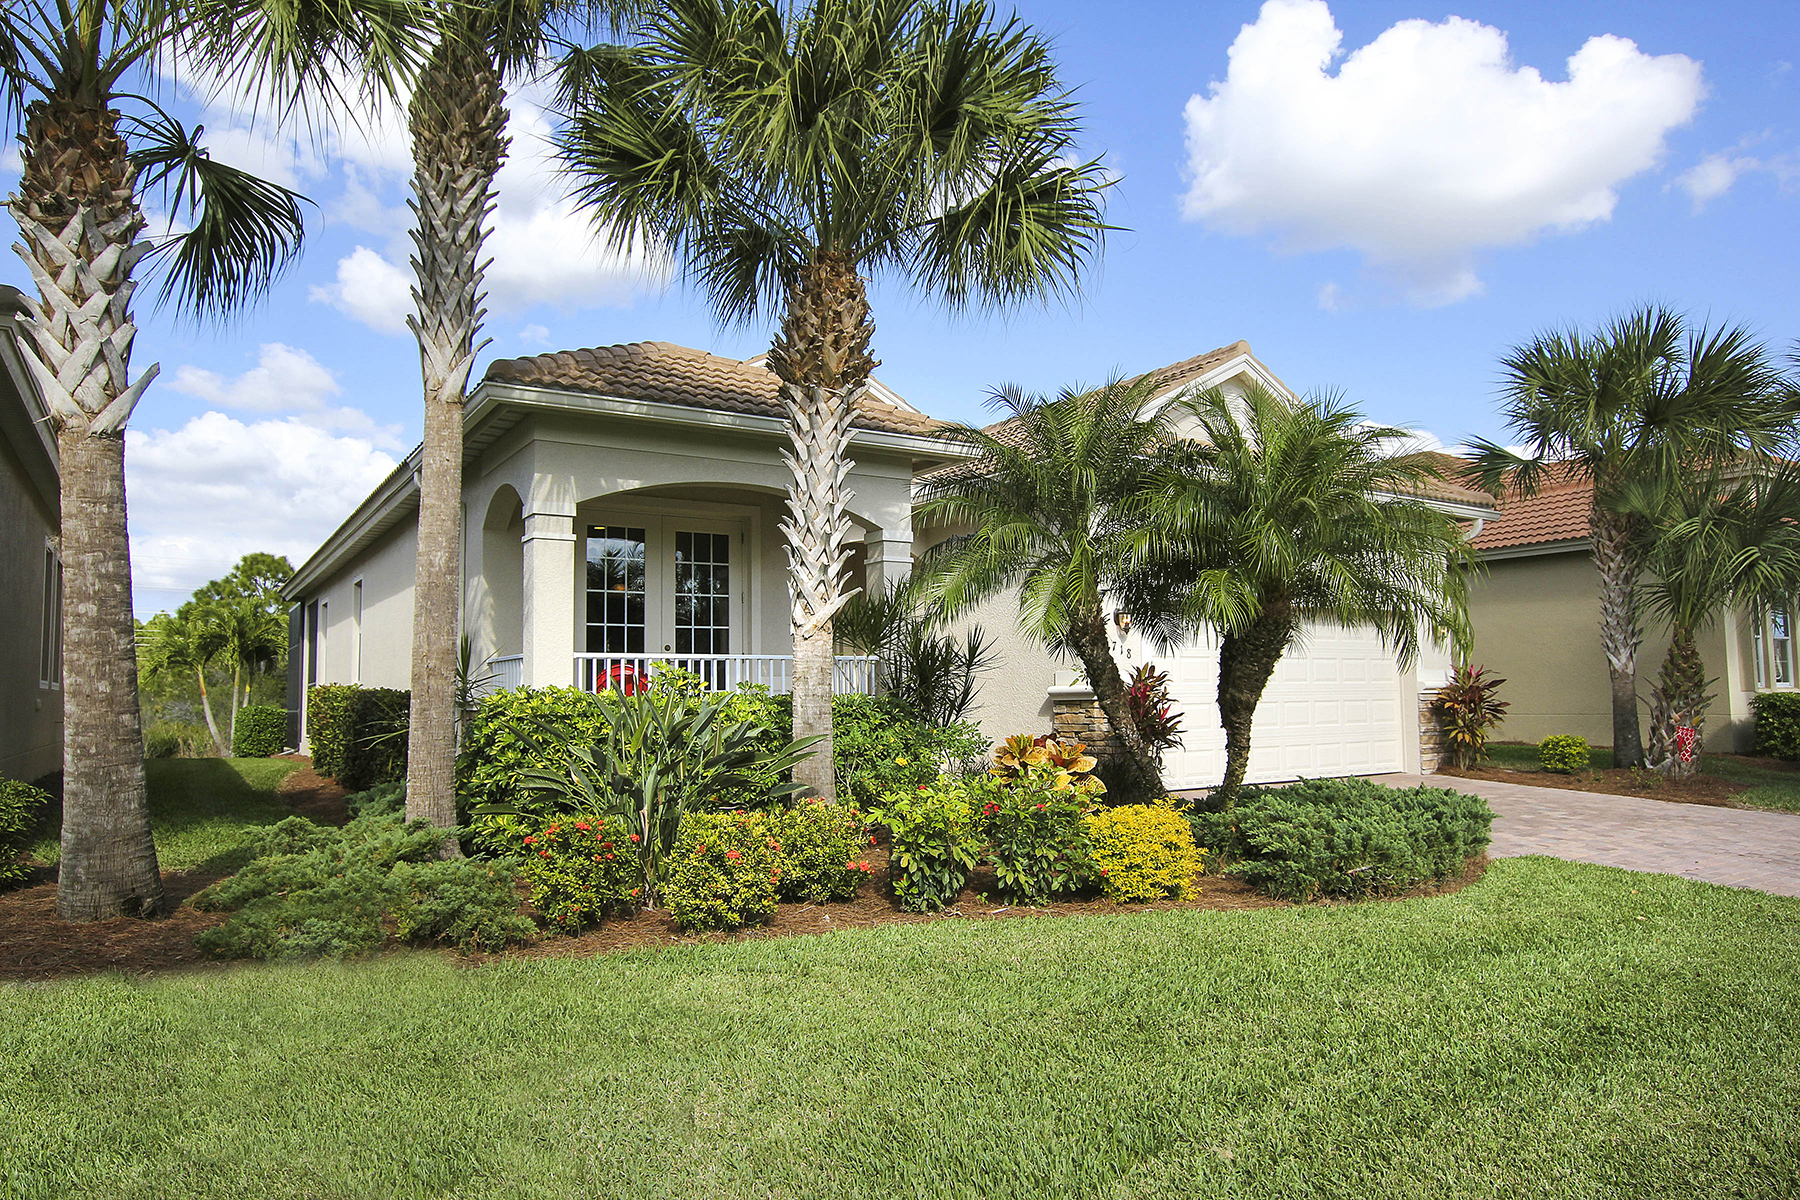 Single Family Home for Sale at EMERSON SQUARE 5718 Calmar Breeze Ln Fort Myers, Florida, 33908 United States